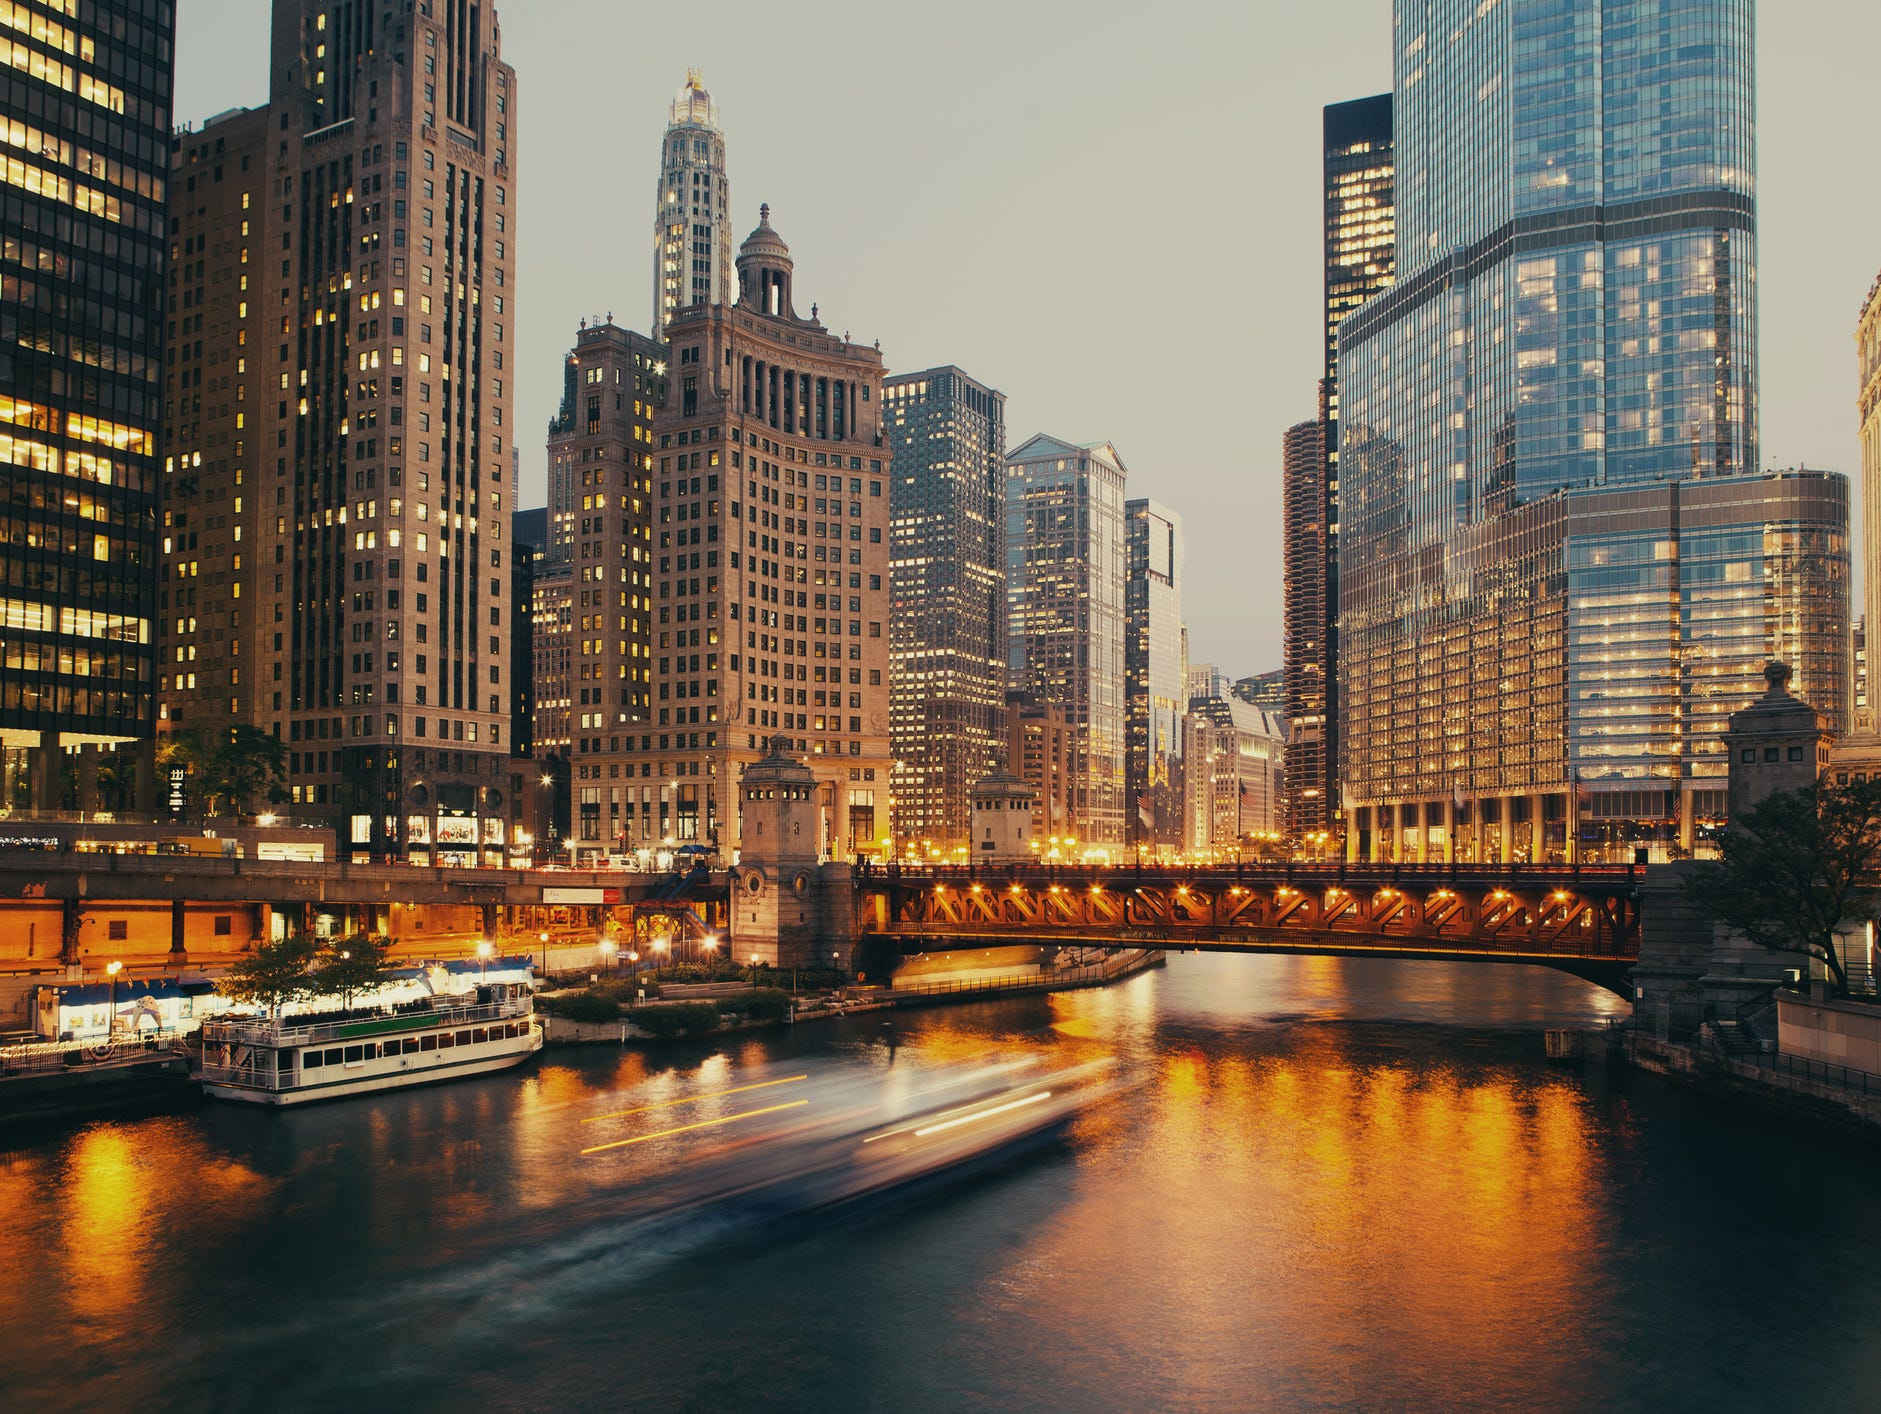 Win a four day three night stay in the Windy City - round trip train tickets and hotel included. Enter 4/15-5/13.